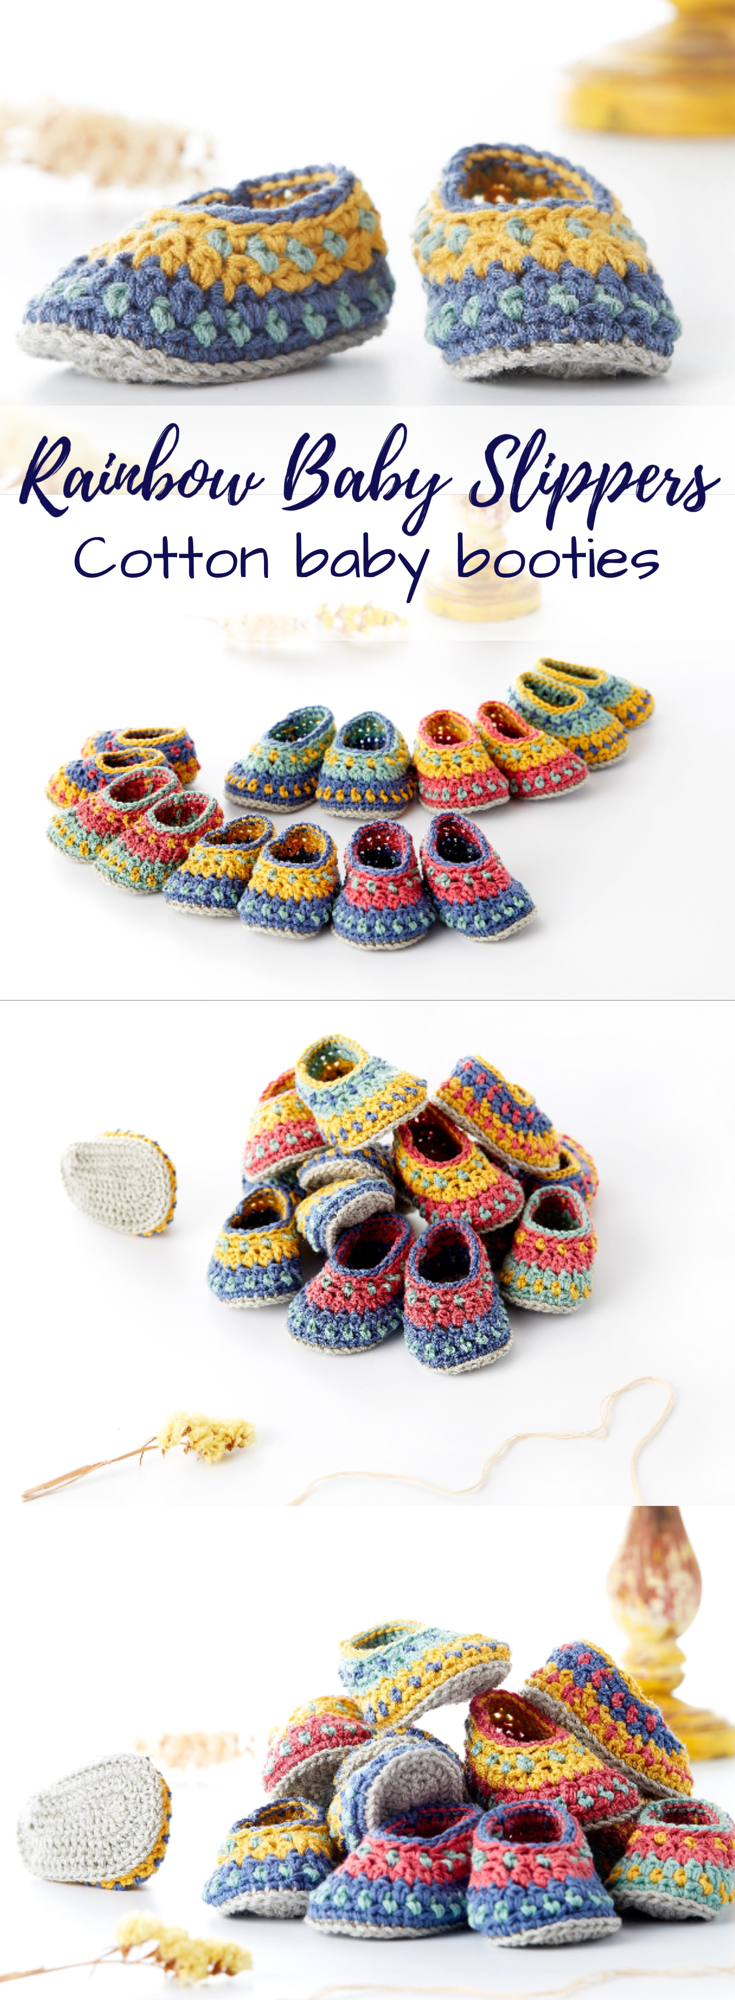 Cotton rainbow baby booties. What cute slippers! Gorgeous colours ...